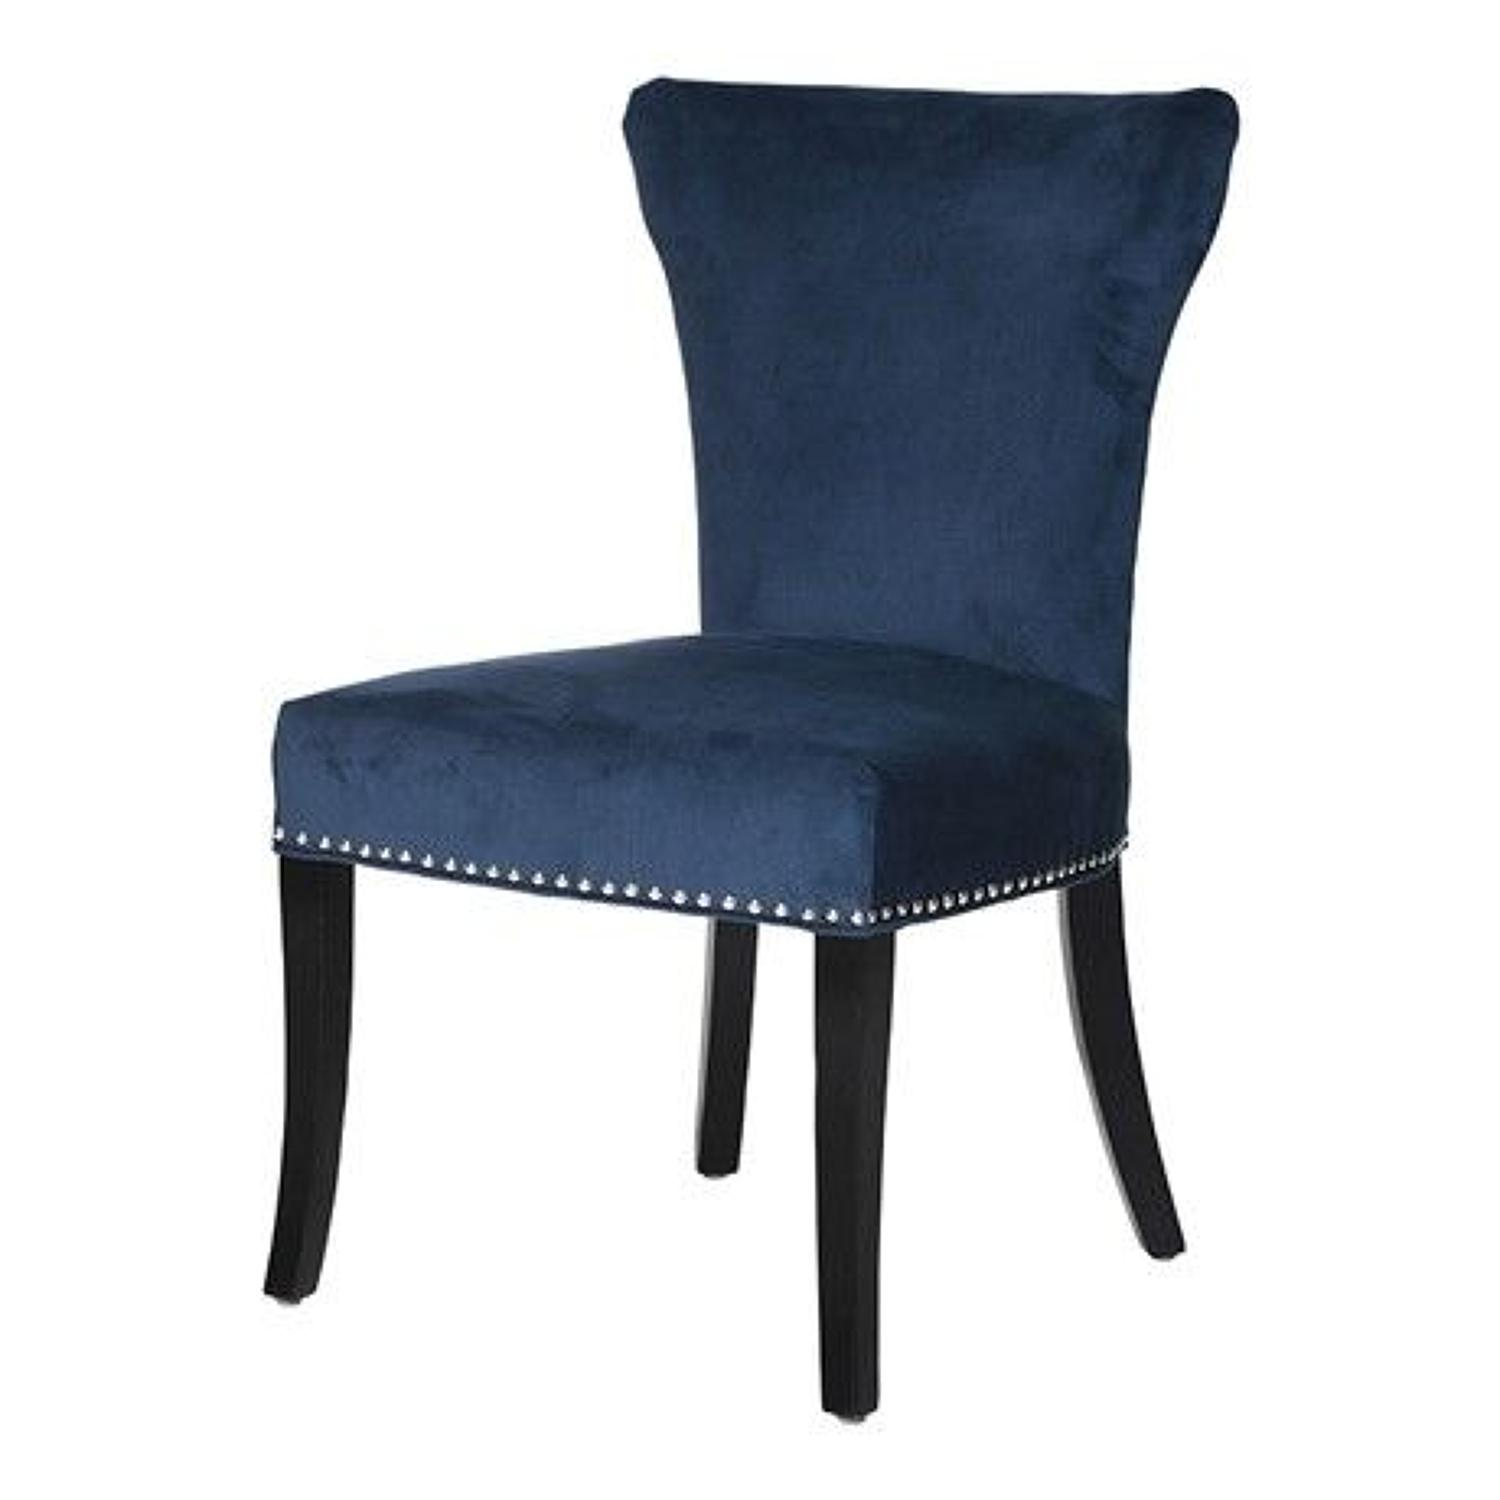 Blue velvet dining chair with feature silver studs.